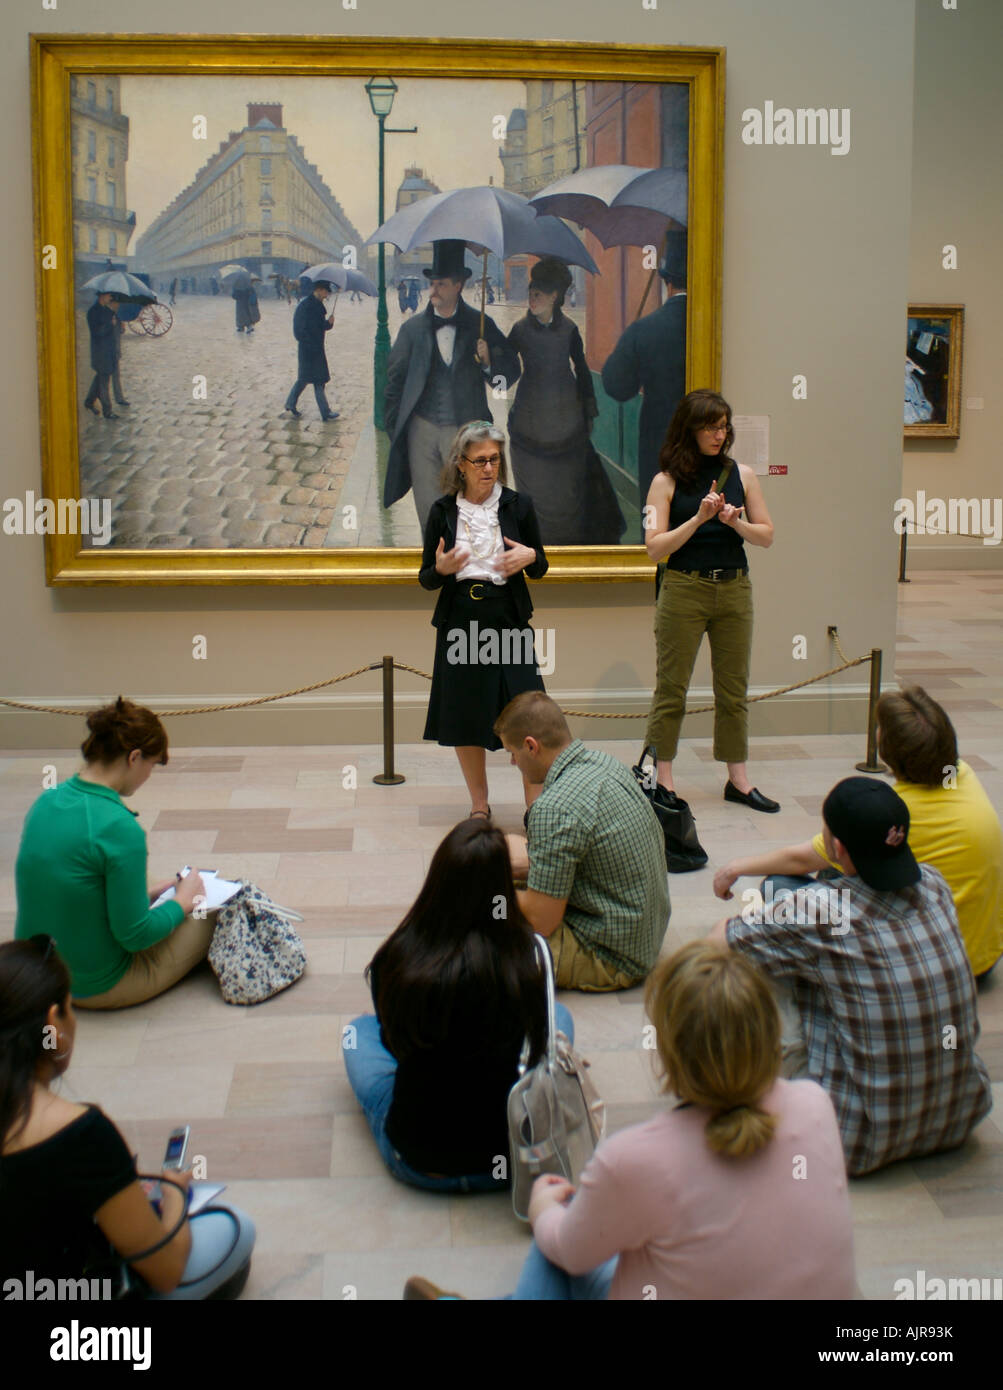 Museum tour guide and her sign language translator lecture a group of students - Stock Image